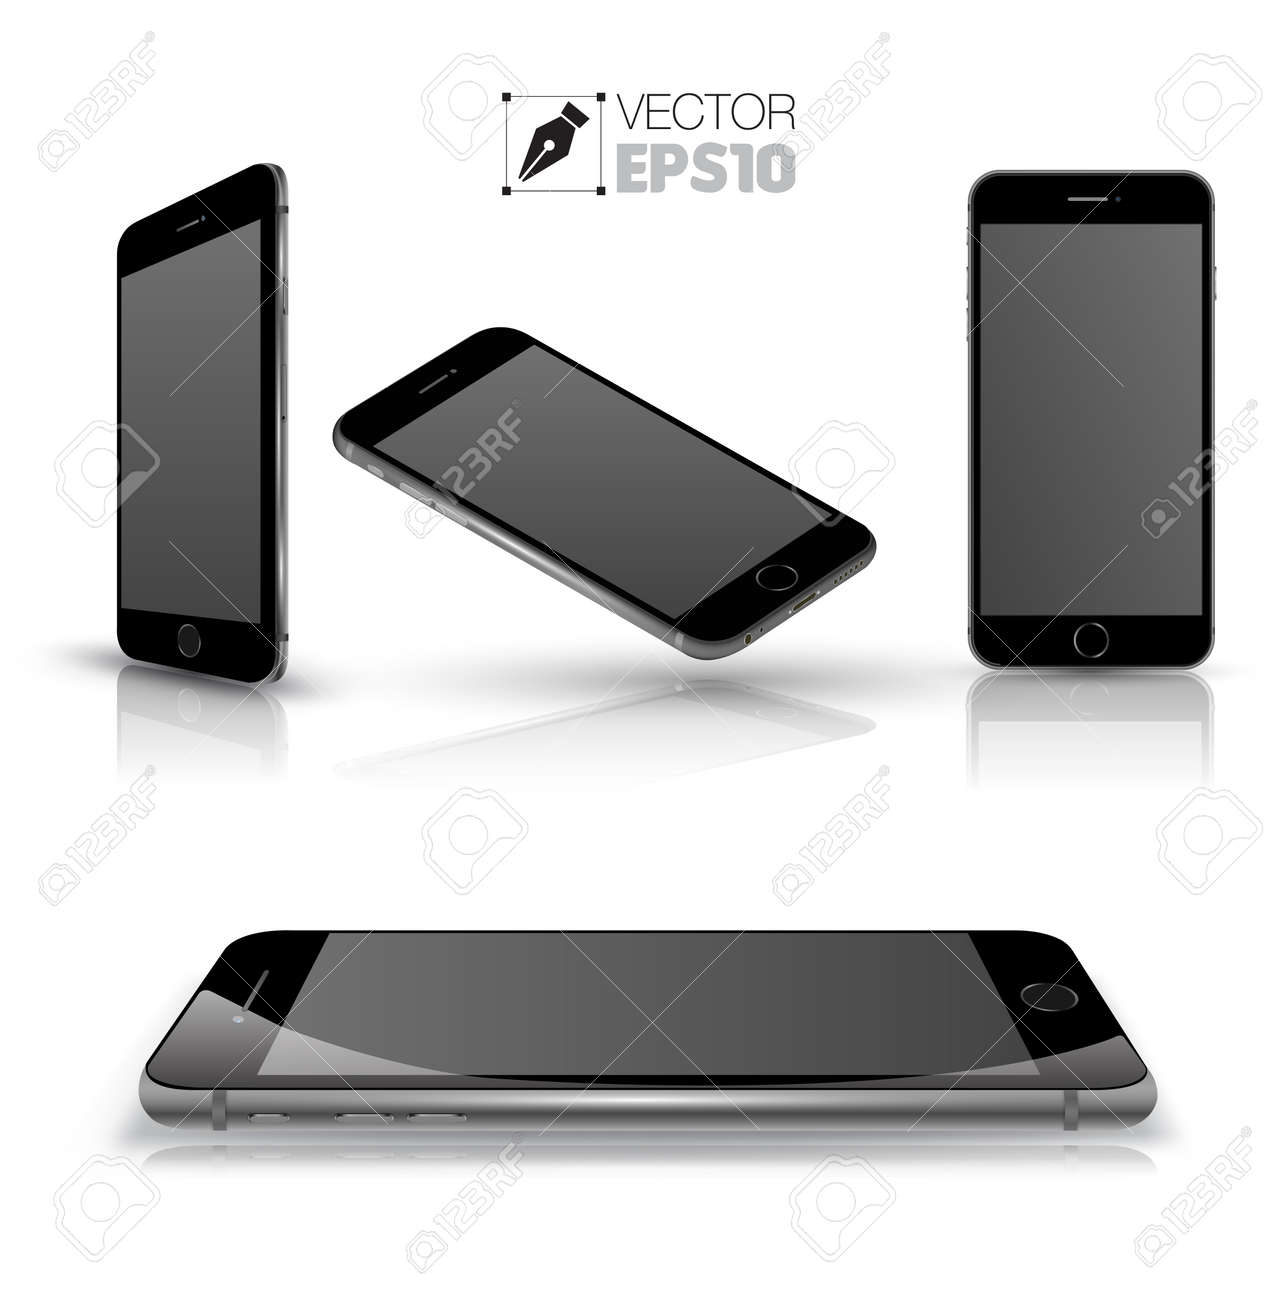 Mobile phone isolated on white. Realistic smartphones vector set. Vector illustration. - 37091359